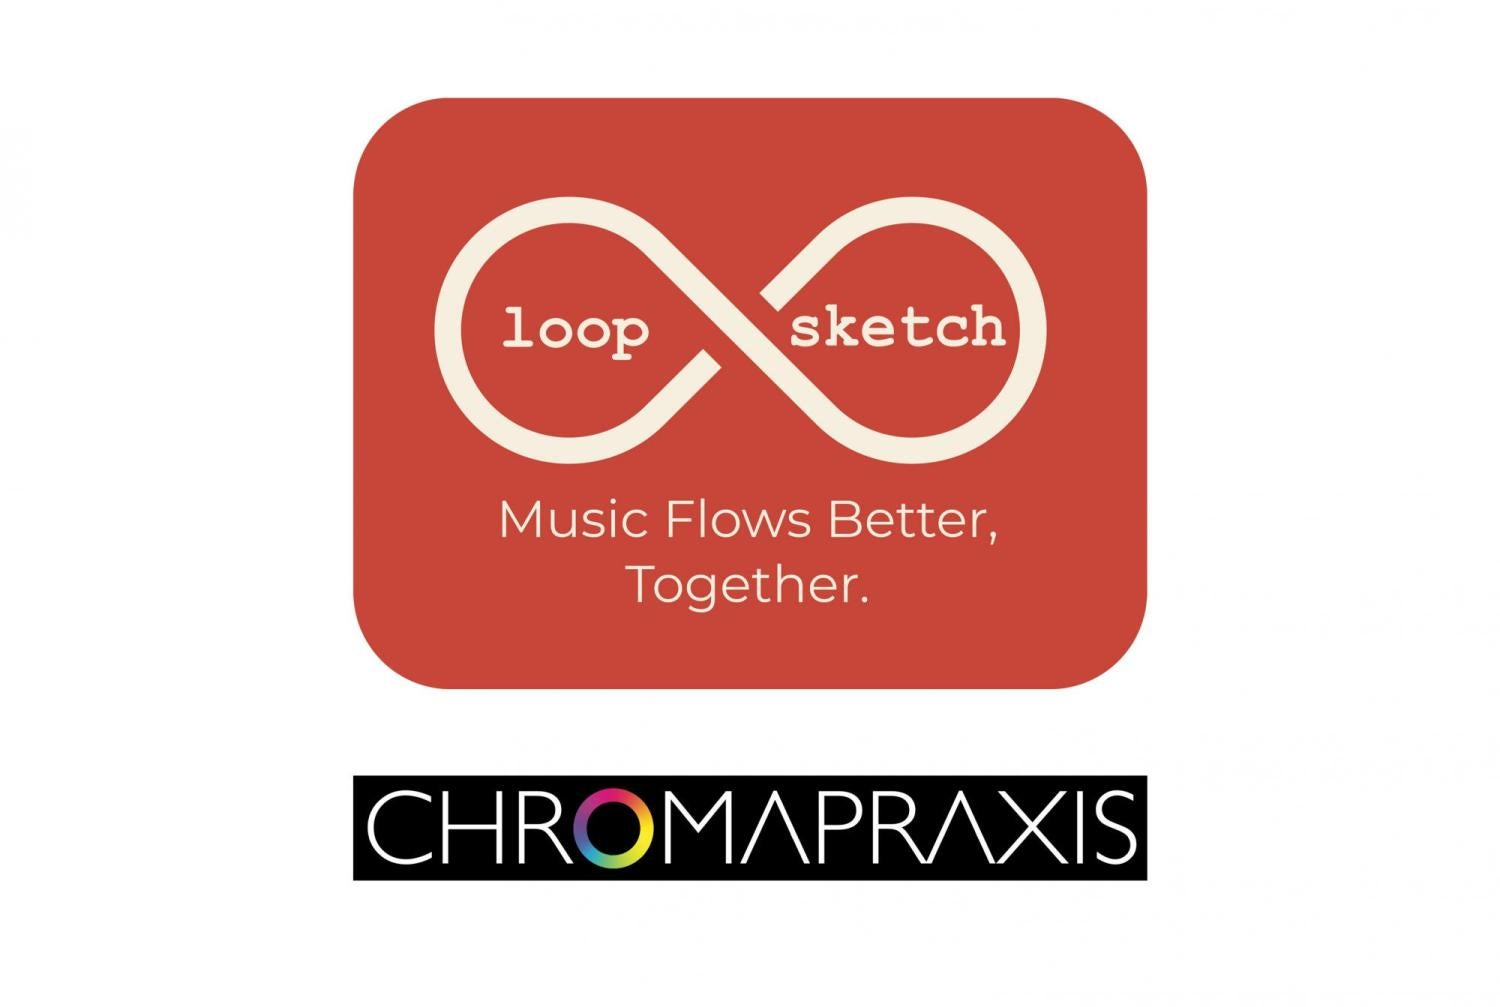 Chromapraxis and LoopSketch logos